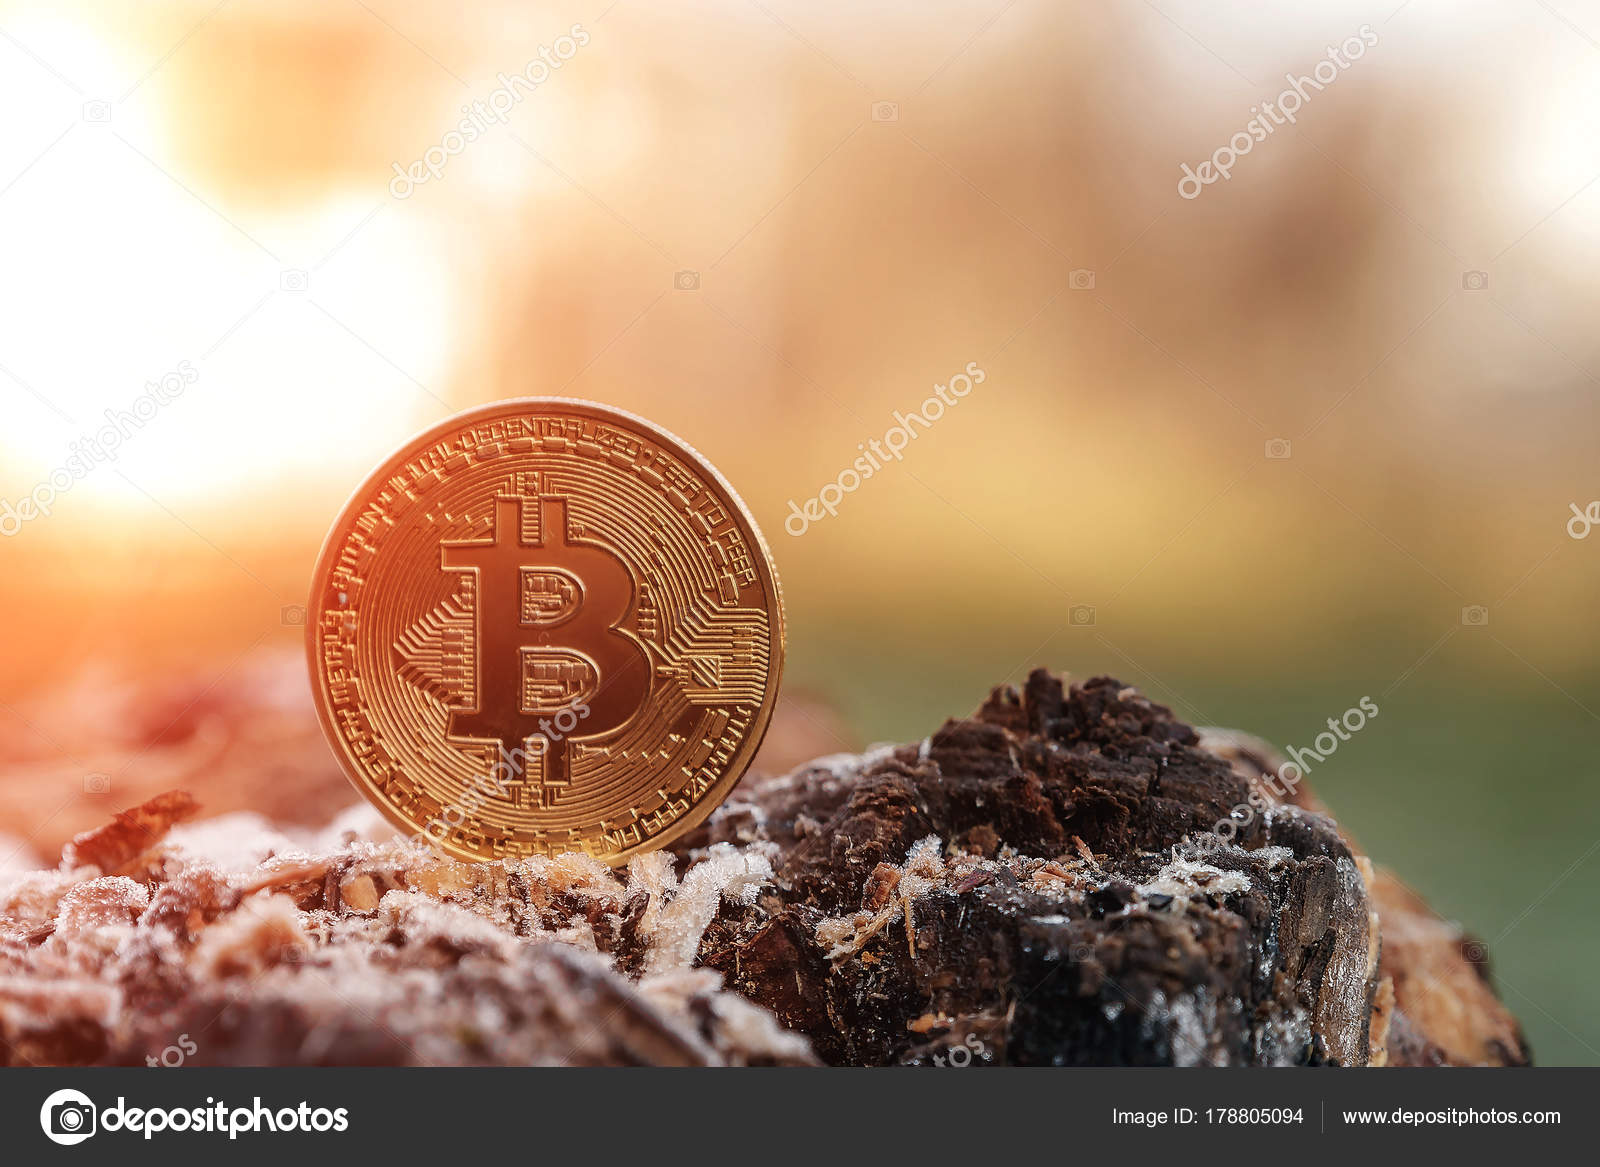 bitcoins images of nature